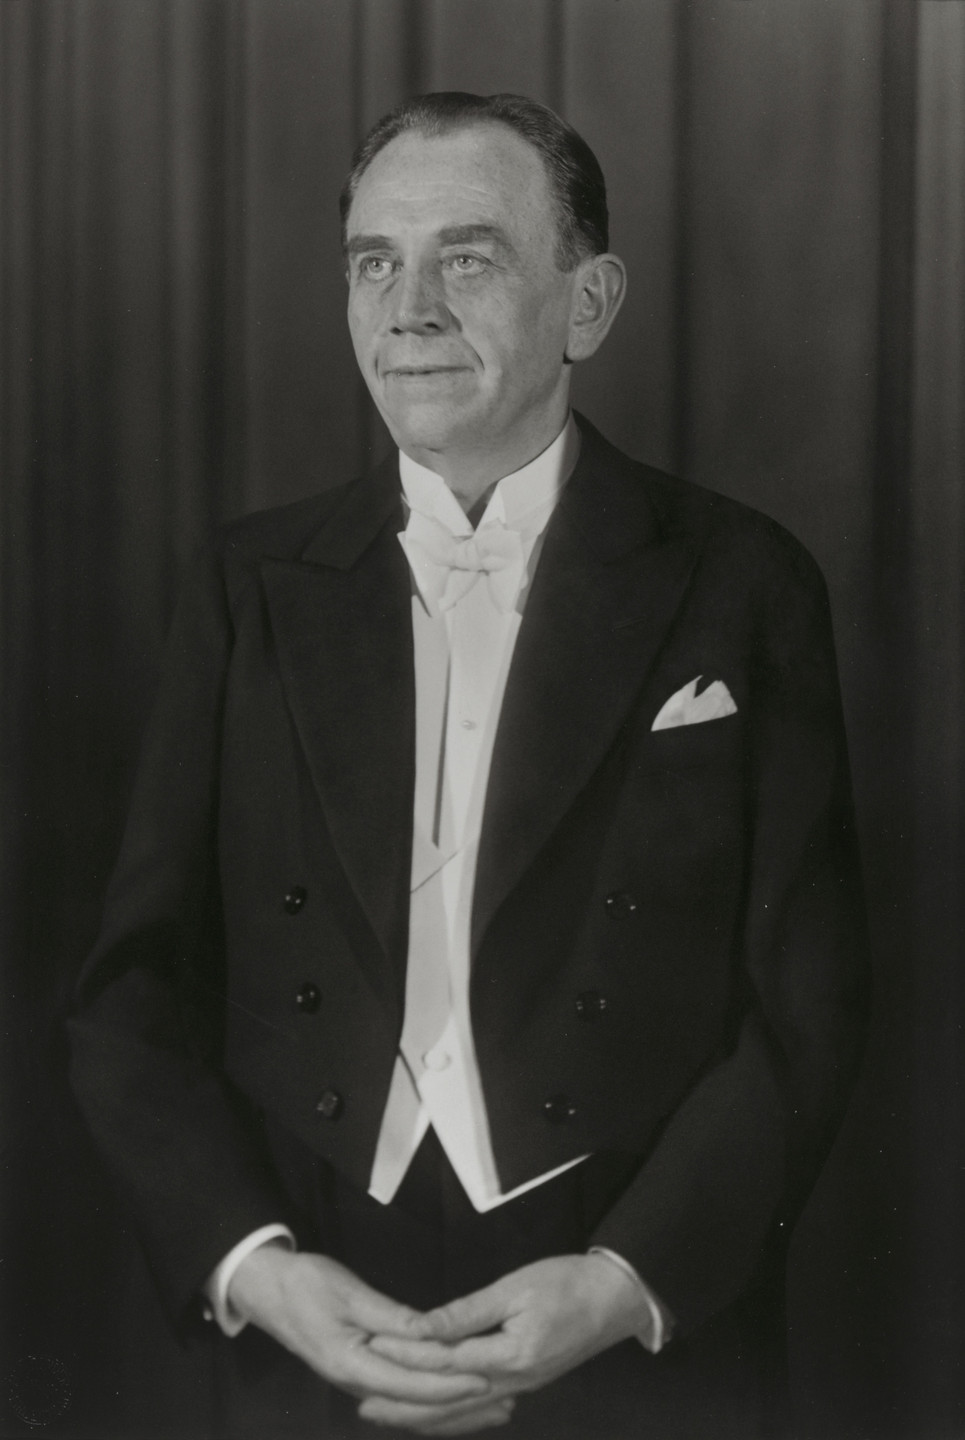 August Sander. Rhineland Songwriter [Willi Ostermann]. 1932